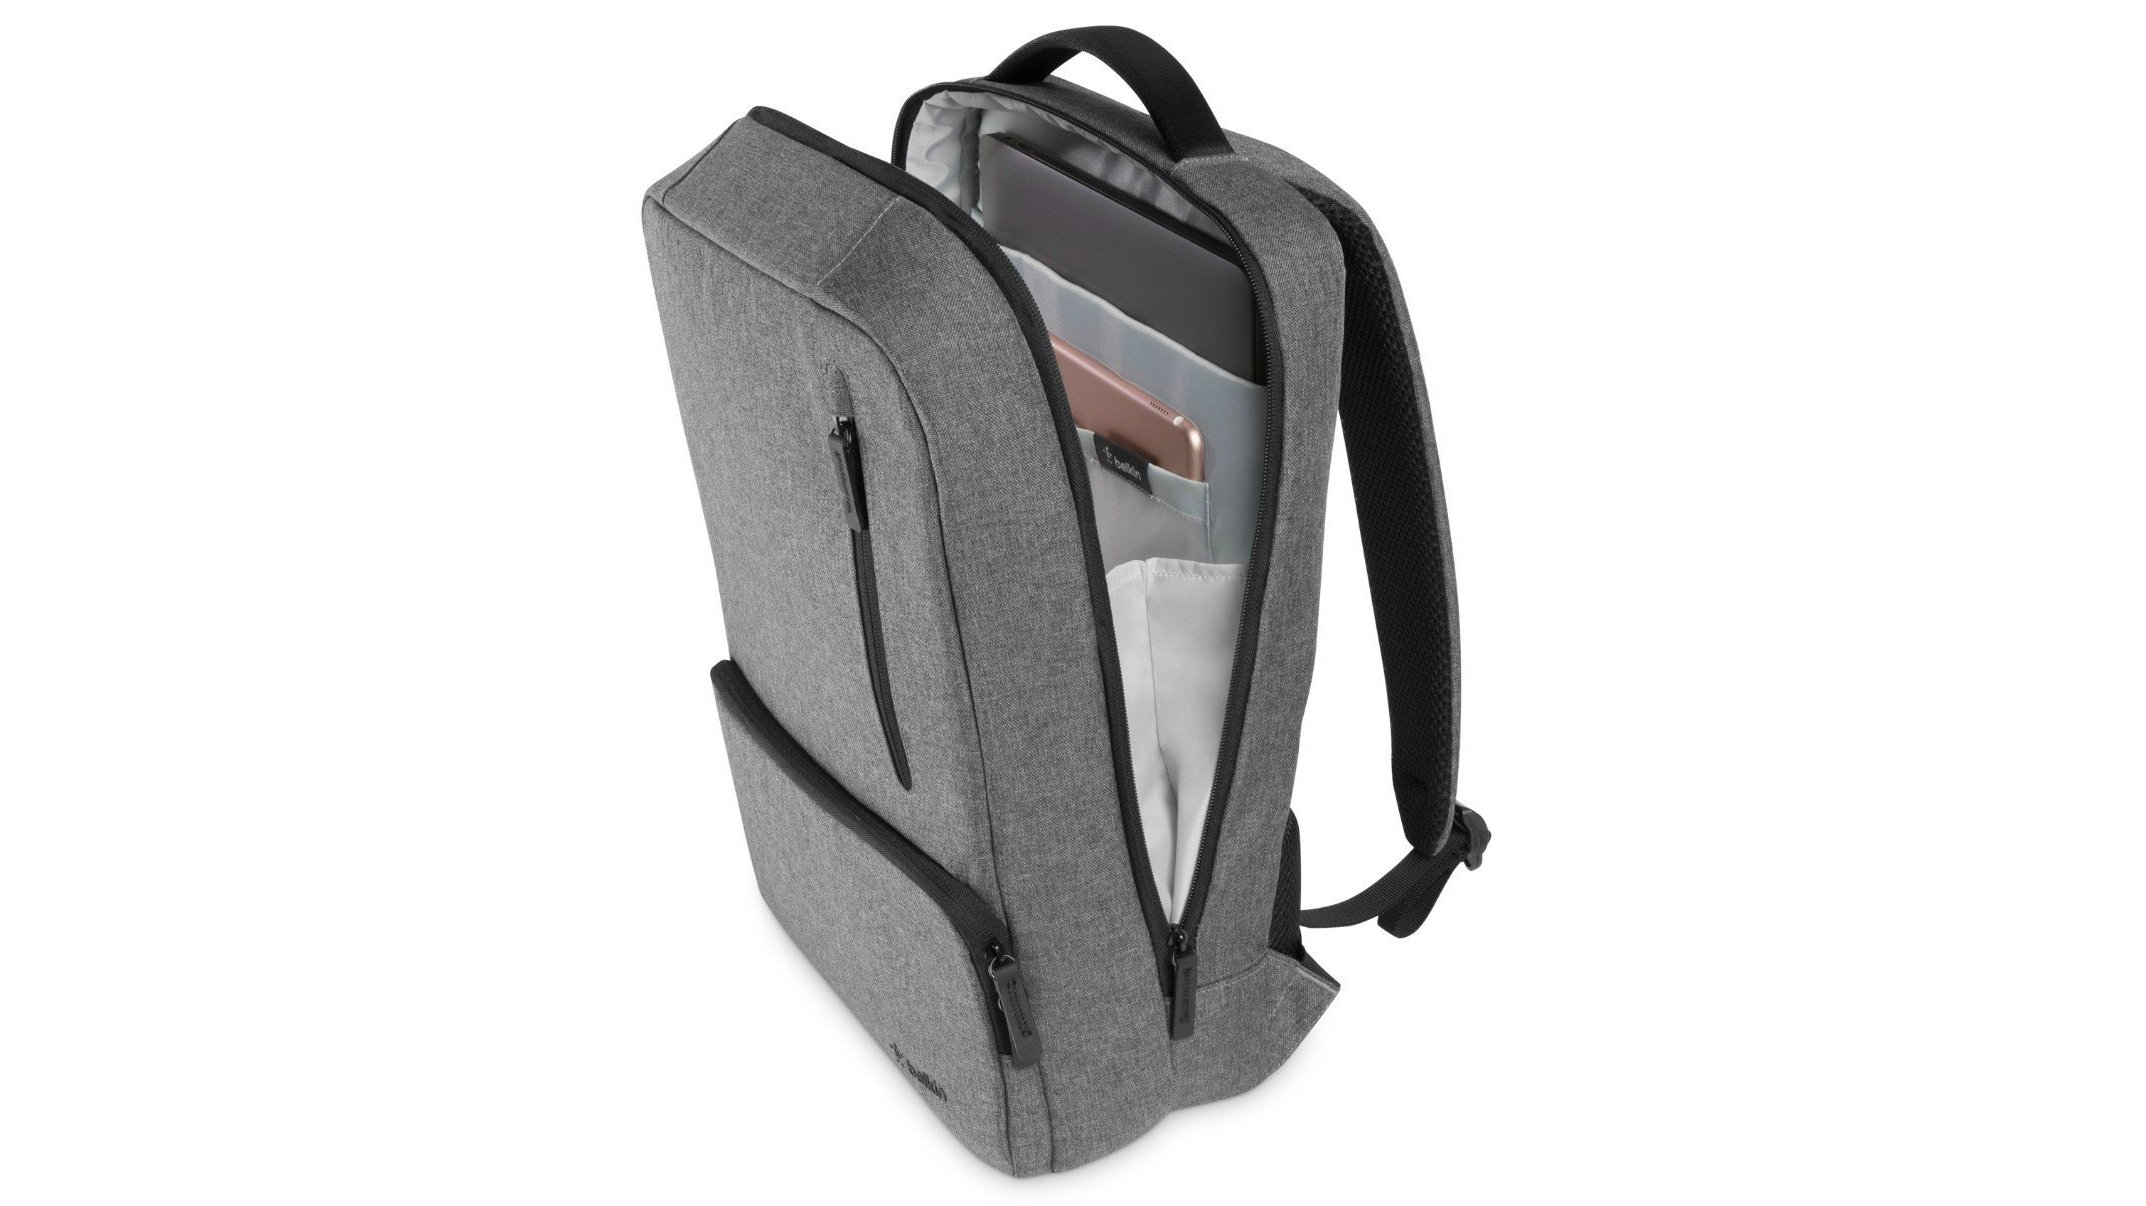 Best Laptop Bag 2018 The Best Laptop Backpacks Sleeves Cases And